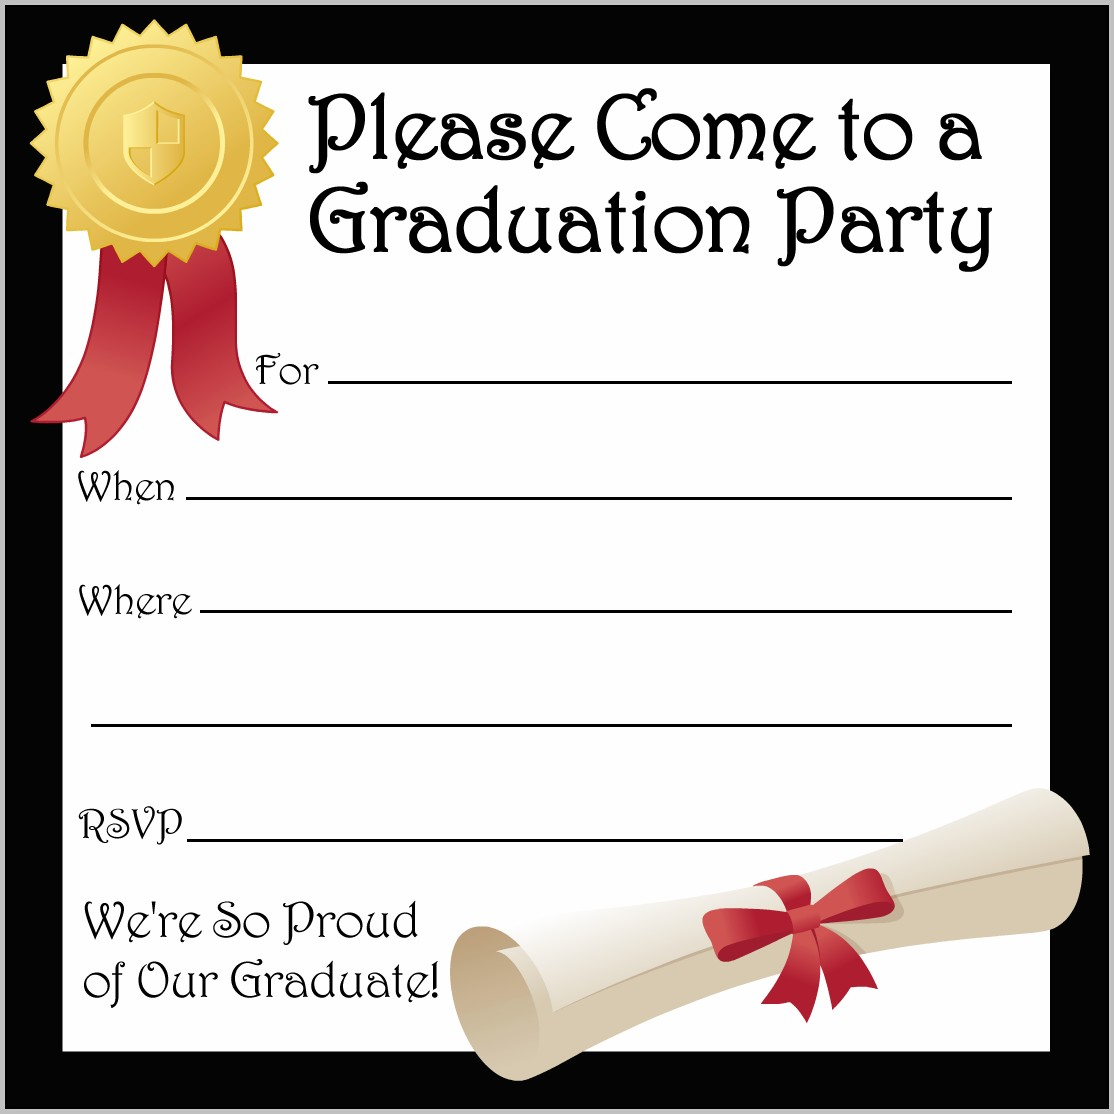 Unique Ideas For Graduation Party Invitations Templates With Prepossessing Layout For Create Own Graduation Party Invitations Templates Free Ideas | Silverlininginvitations